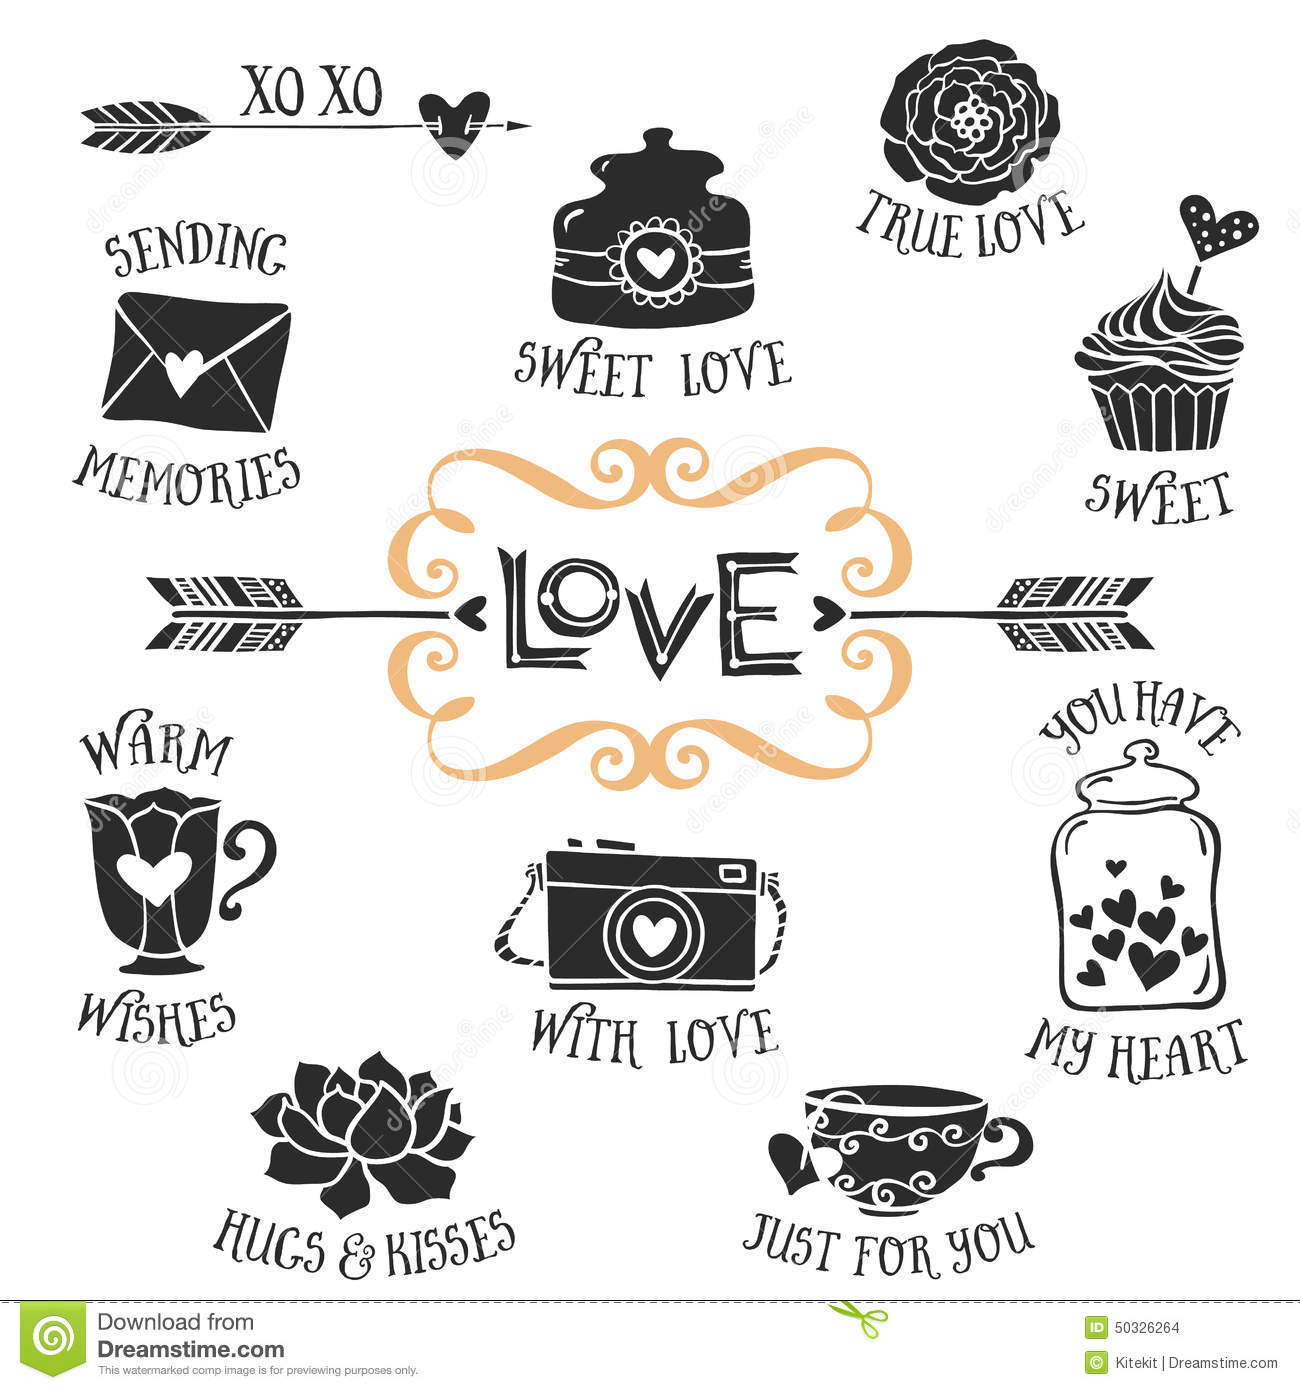 Download Vintage Decorative Love Badges With Lettering. Hand Drawn Vector Stock Vector - Illustration of holiday, invitation: 50326264